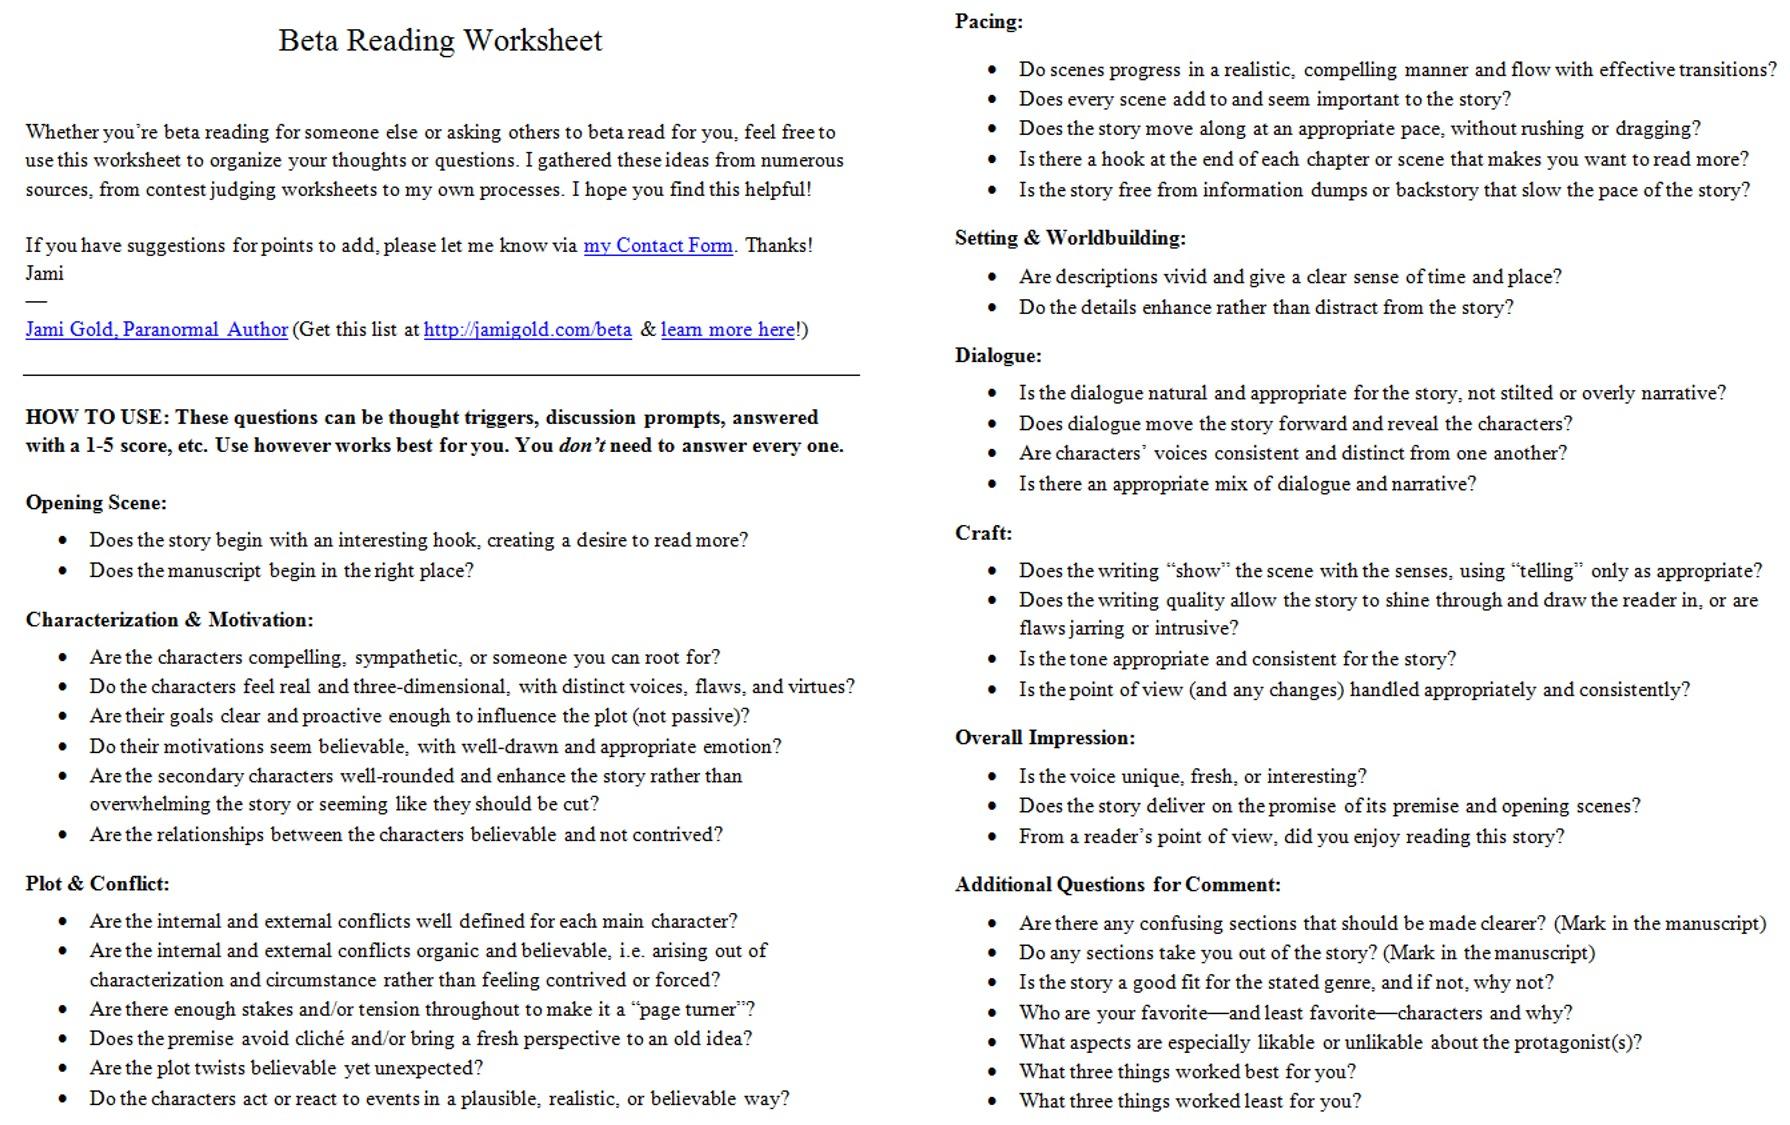 Weirdmailus  Outstanding Worksheets For Writers  Jami Gold Paranormal Author With Hot Screen Shot Of The Twopage Beta Reading Worksheet With Charming Math Th Grade Worksheets Also Math Drills Worksheets In Addition Systems Of Inequalities Word Problems Worksheet And Zaner Bloser Handwriting Worksheets As Well As Spanish Subject Pronouns Worksheet Additionally Th Grade Math Worksheets Pdf From Jamigoldcom With Weirdmailus  Hot Worksheets For Writers  Jami Gold Paranormal Author With Charming Screen Shot Of The Twopage Beta Reading Worksheet And Outstanding Math Th Grade Worksheets Also Math Drills Worksheets In Addition Systems Of Inequalities Word Problems Worksheet From Jamigoldcom